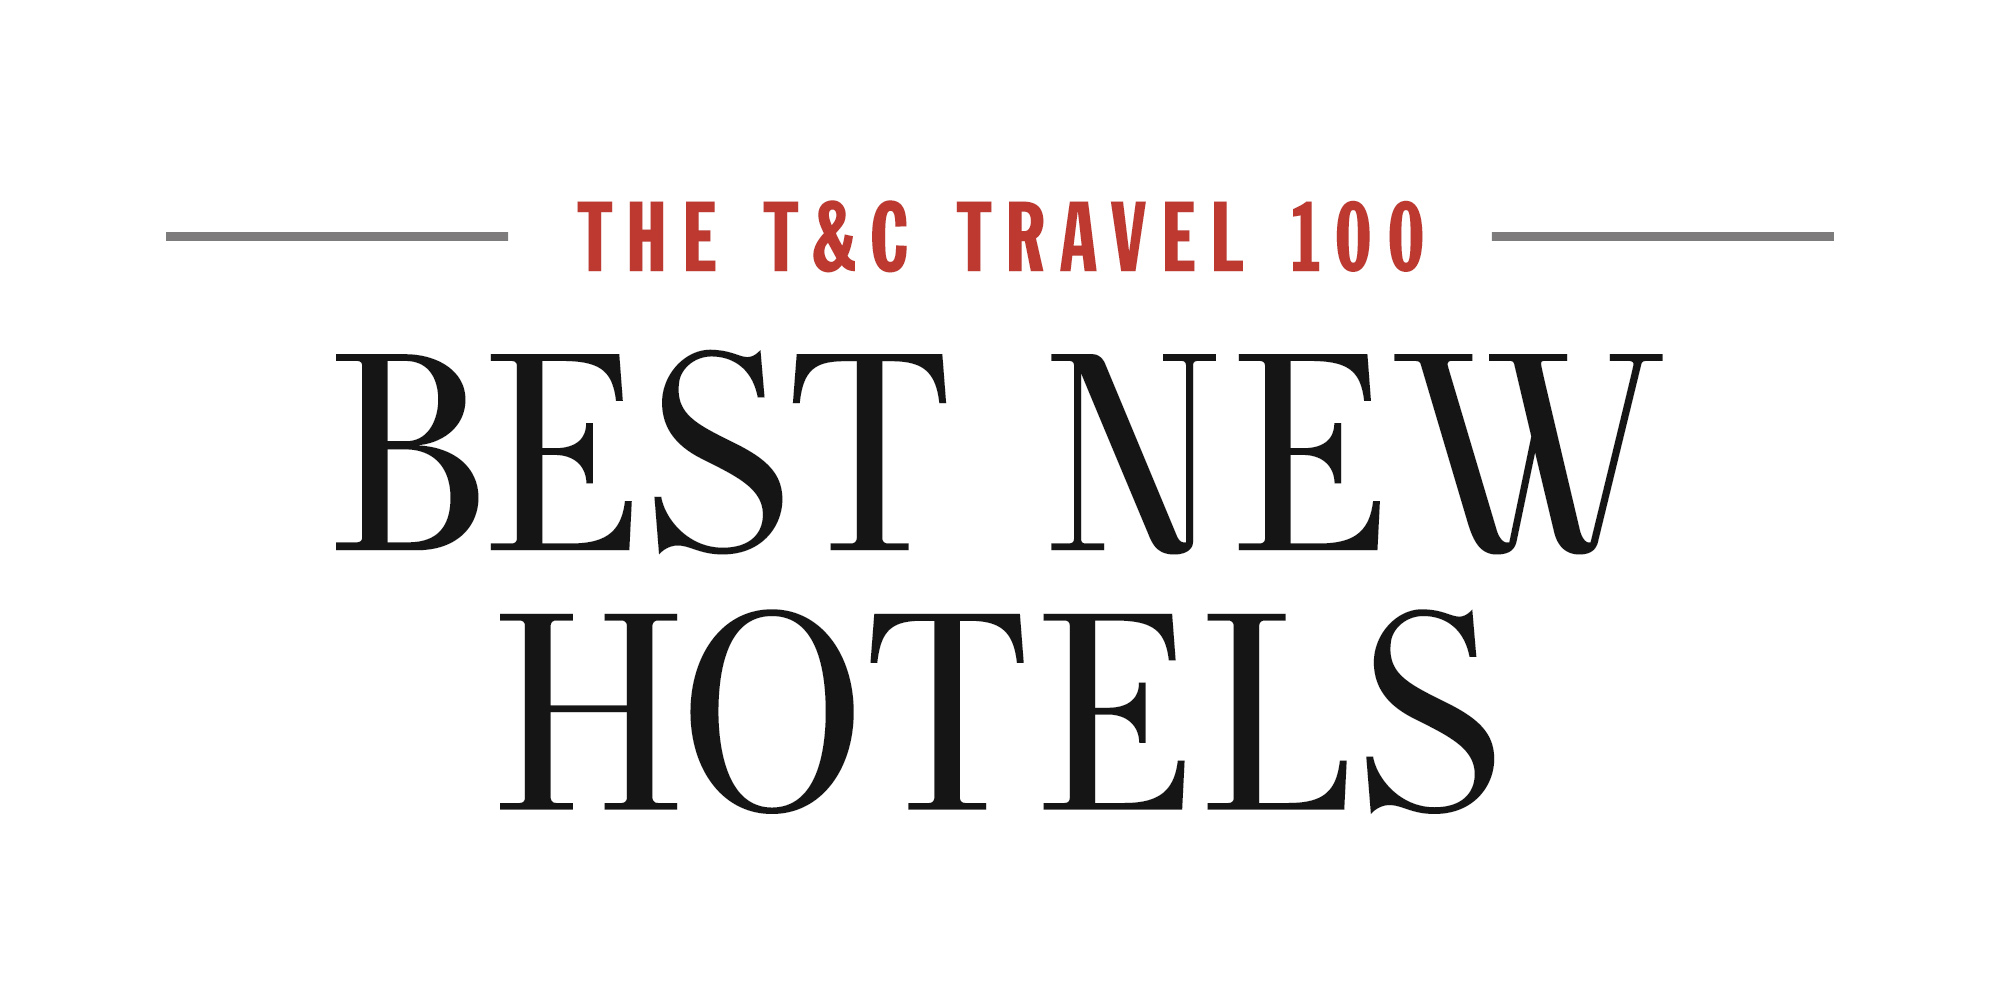 Best Hotels in the World — T&C's Guide